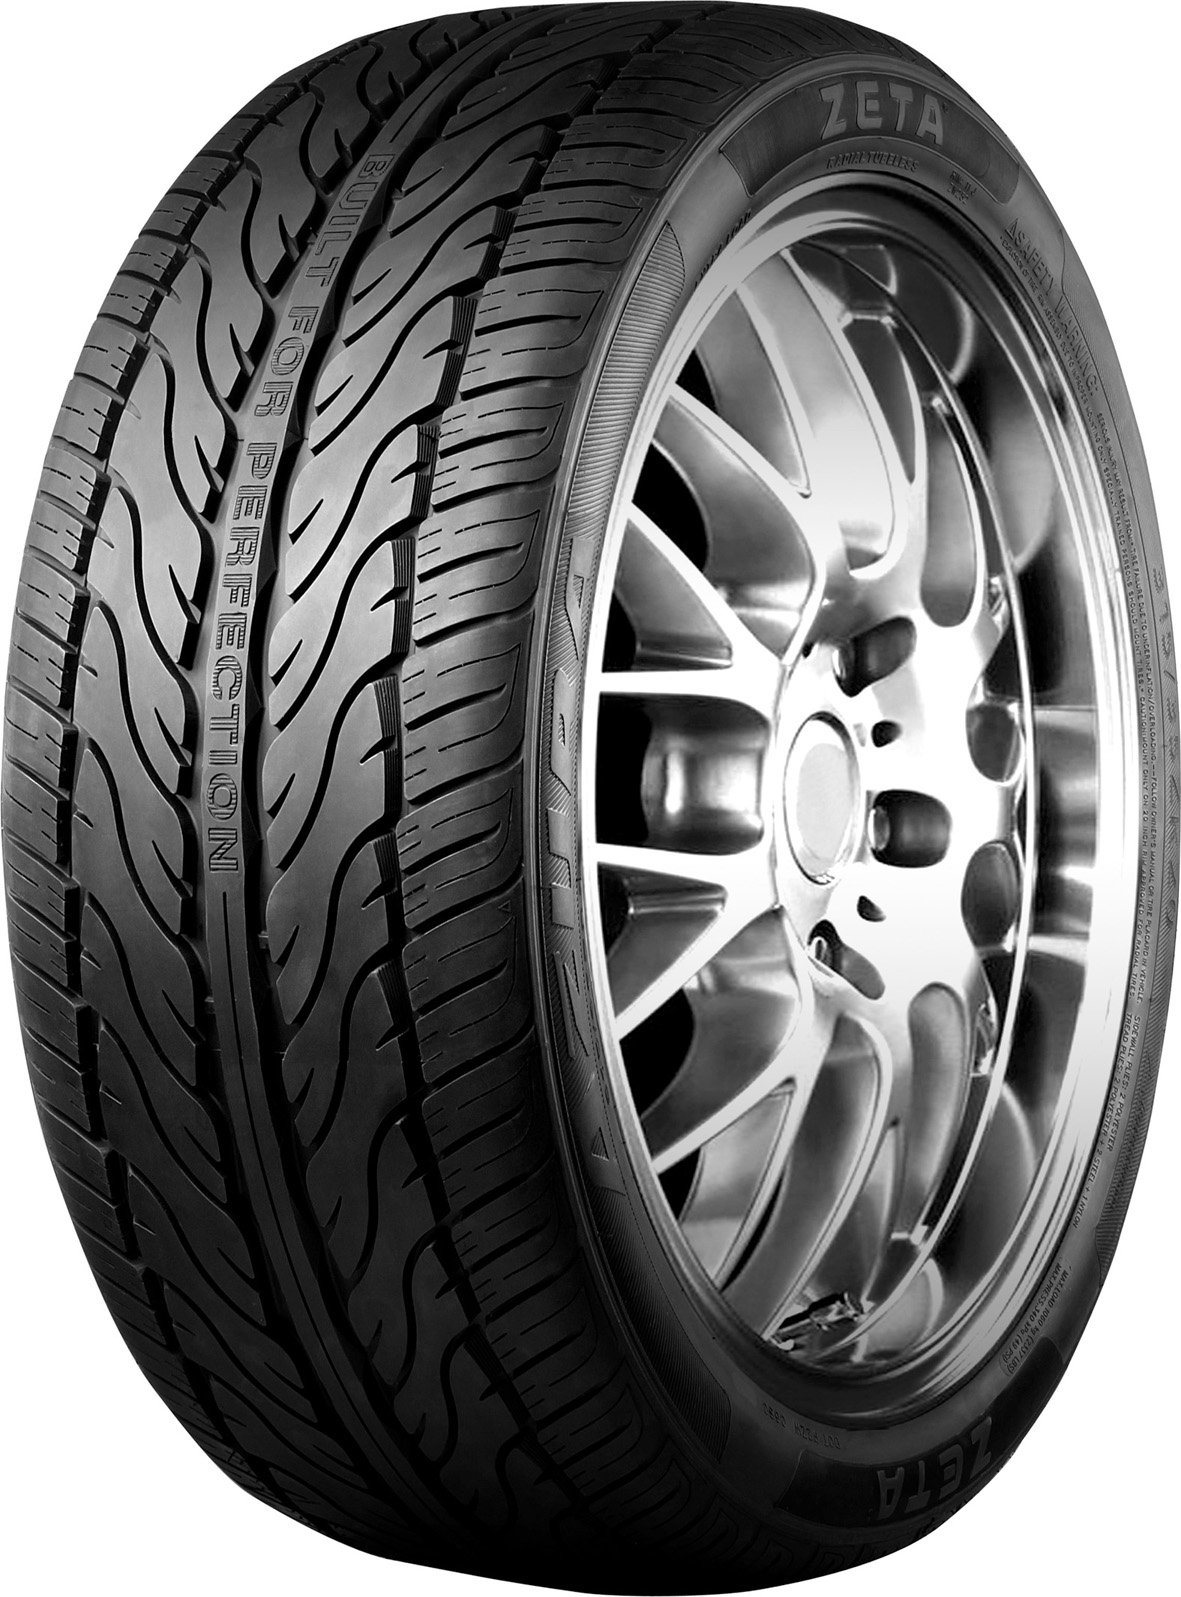 Wholesale Tires Near Me >> Wholesale Run Flat Tires Wholesale Run Flat Tires Manufacturers Suppliers Made In China Com